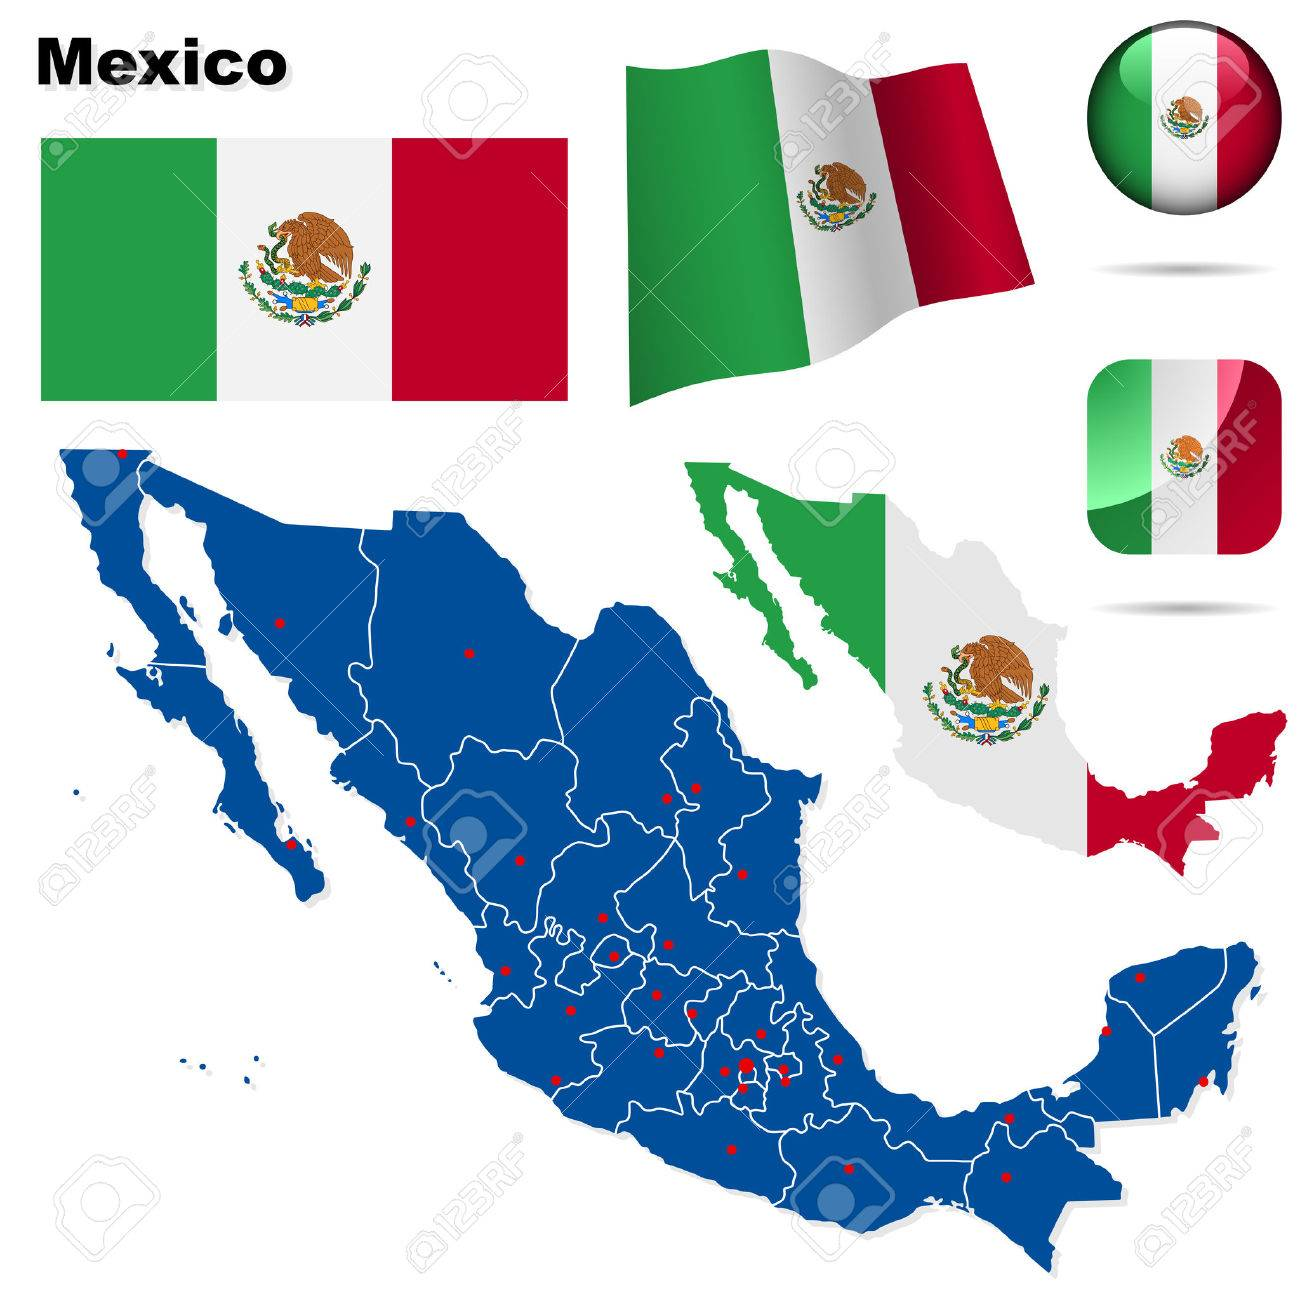 Mexico  set. Detailed country shape with region borders, flags and icons isolated on white background. Stock Vector - 7180038